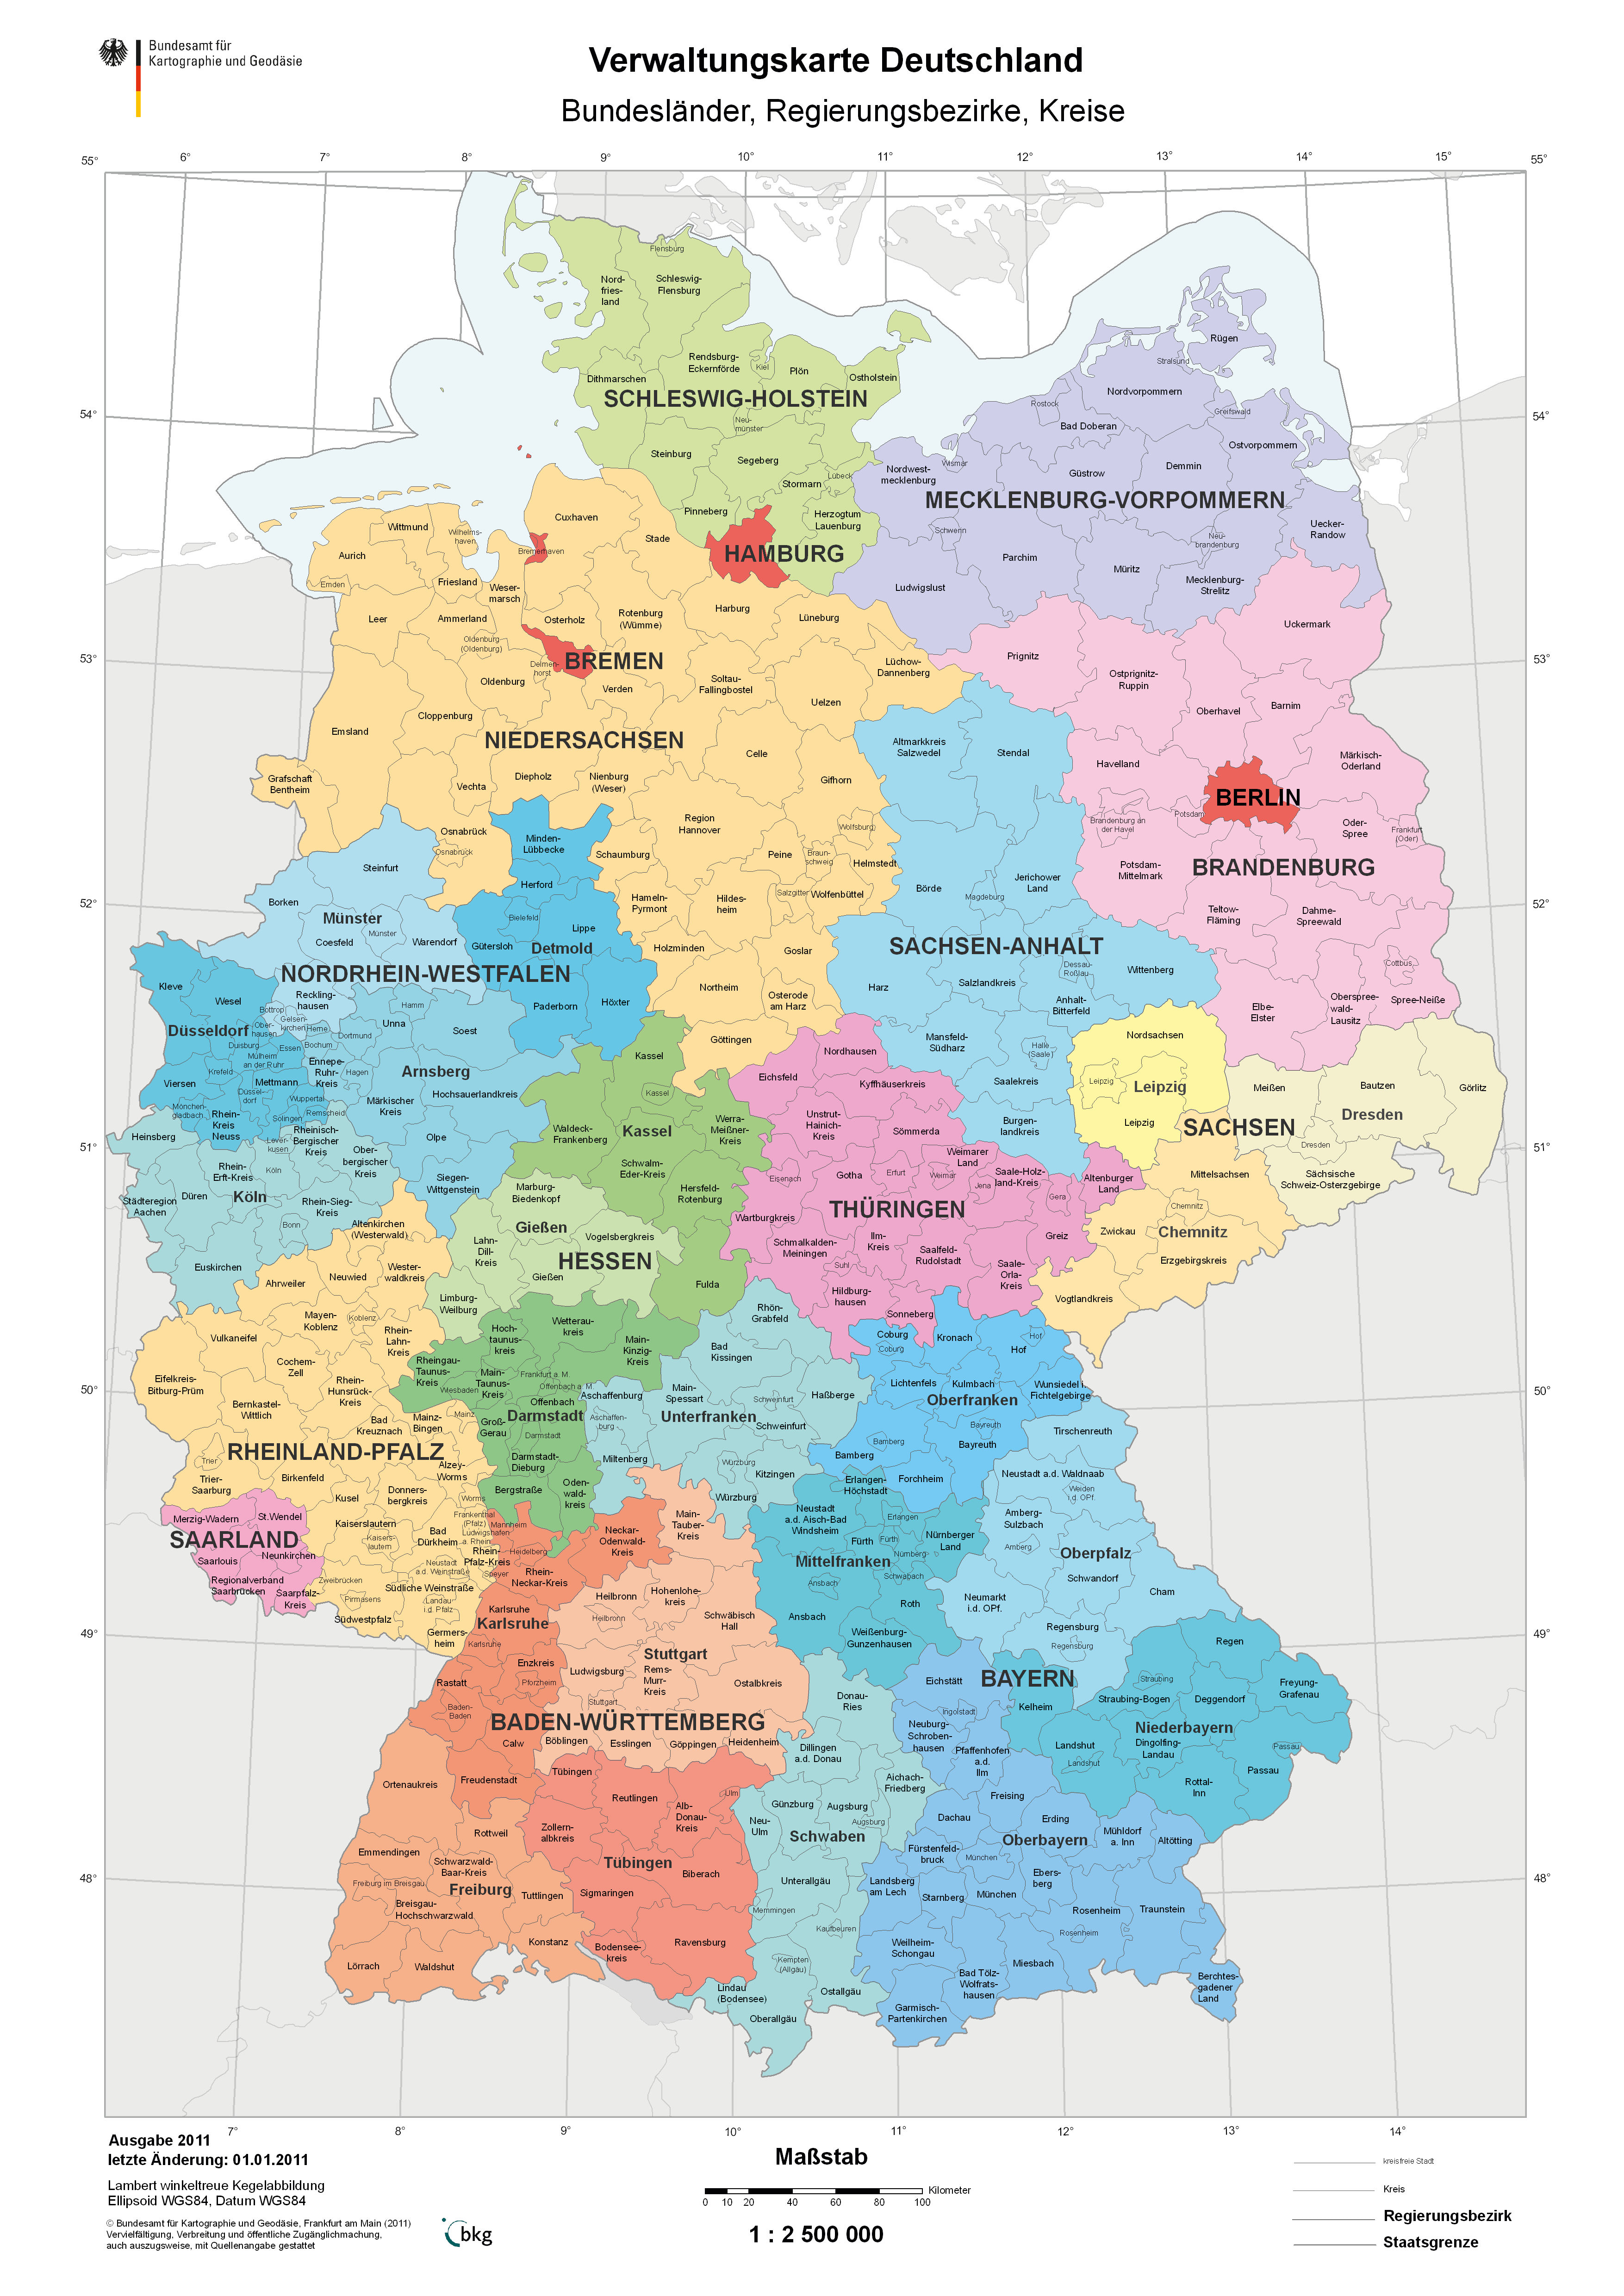 Districts of Germany 2011